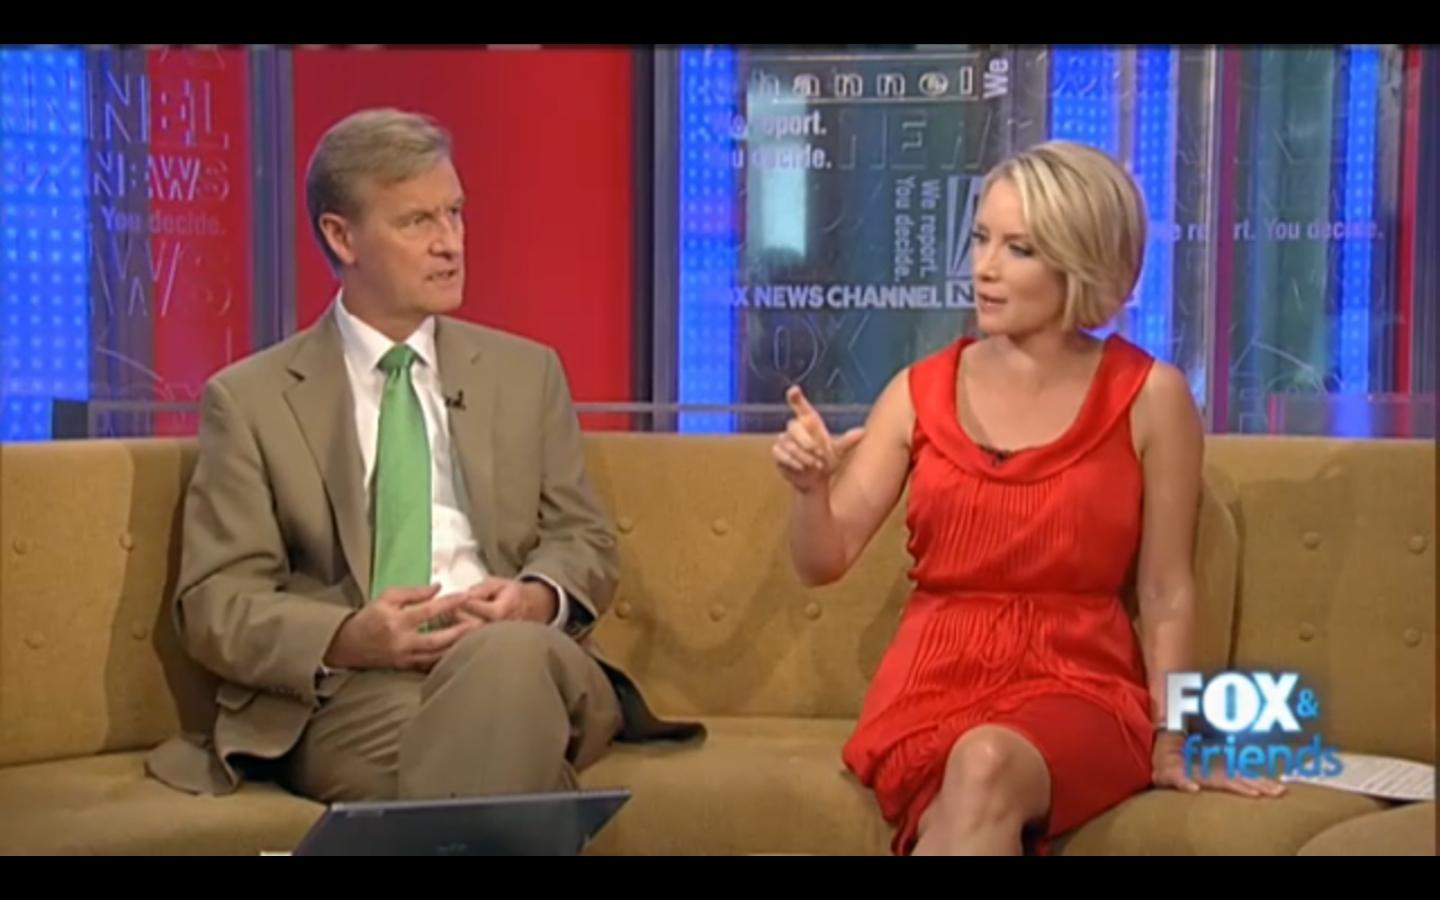 Dana Perino In A Swimsuit http://reporter101.blogspot.com/2010/08/4th-week-of-aug-dana-perino-courtney.html